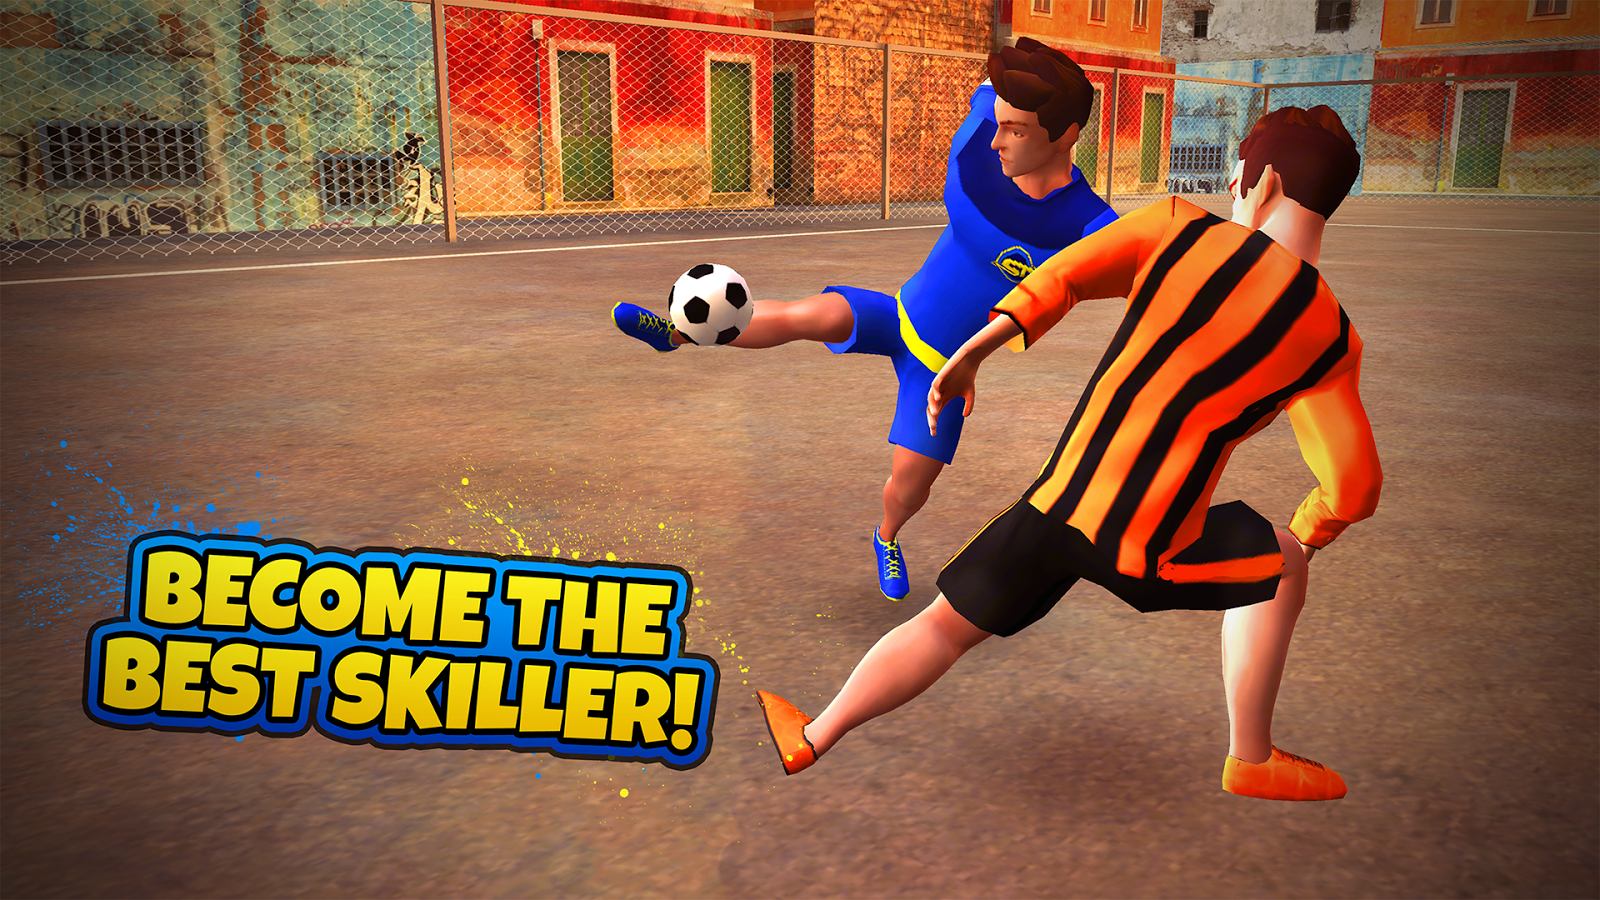 SkillTwins Football Game Screenshot 10